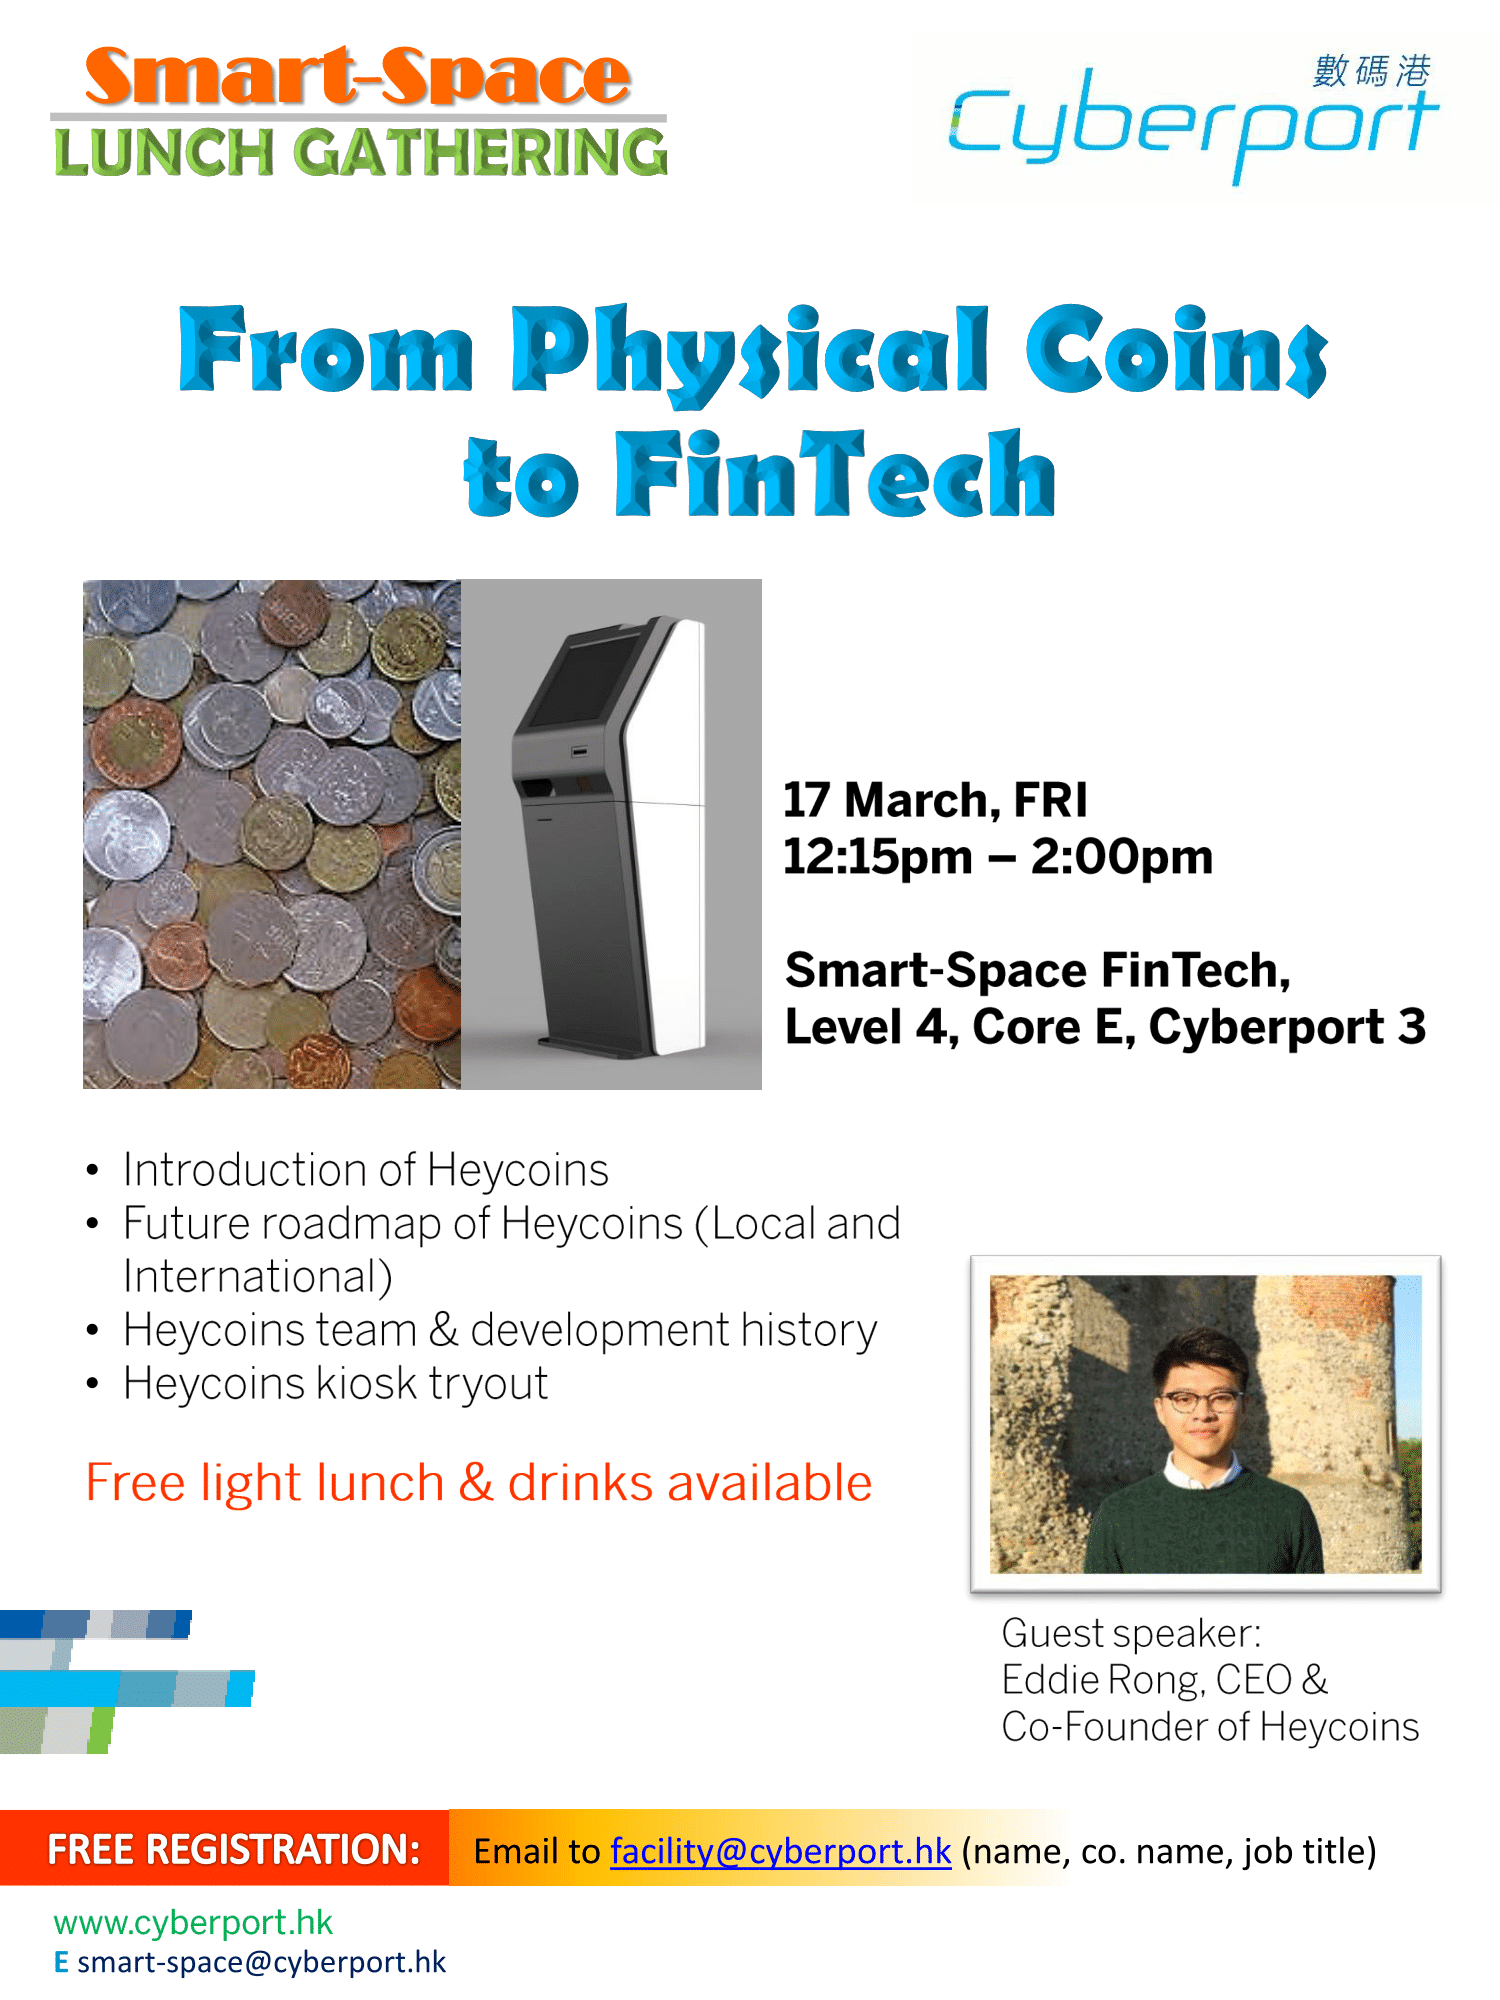 Smart-Space Lunch Gathering: From Physical Coins to FinTech